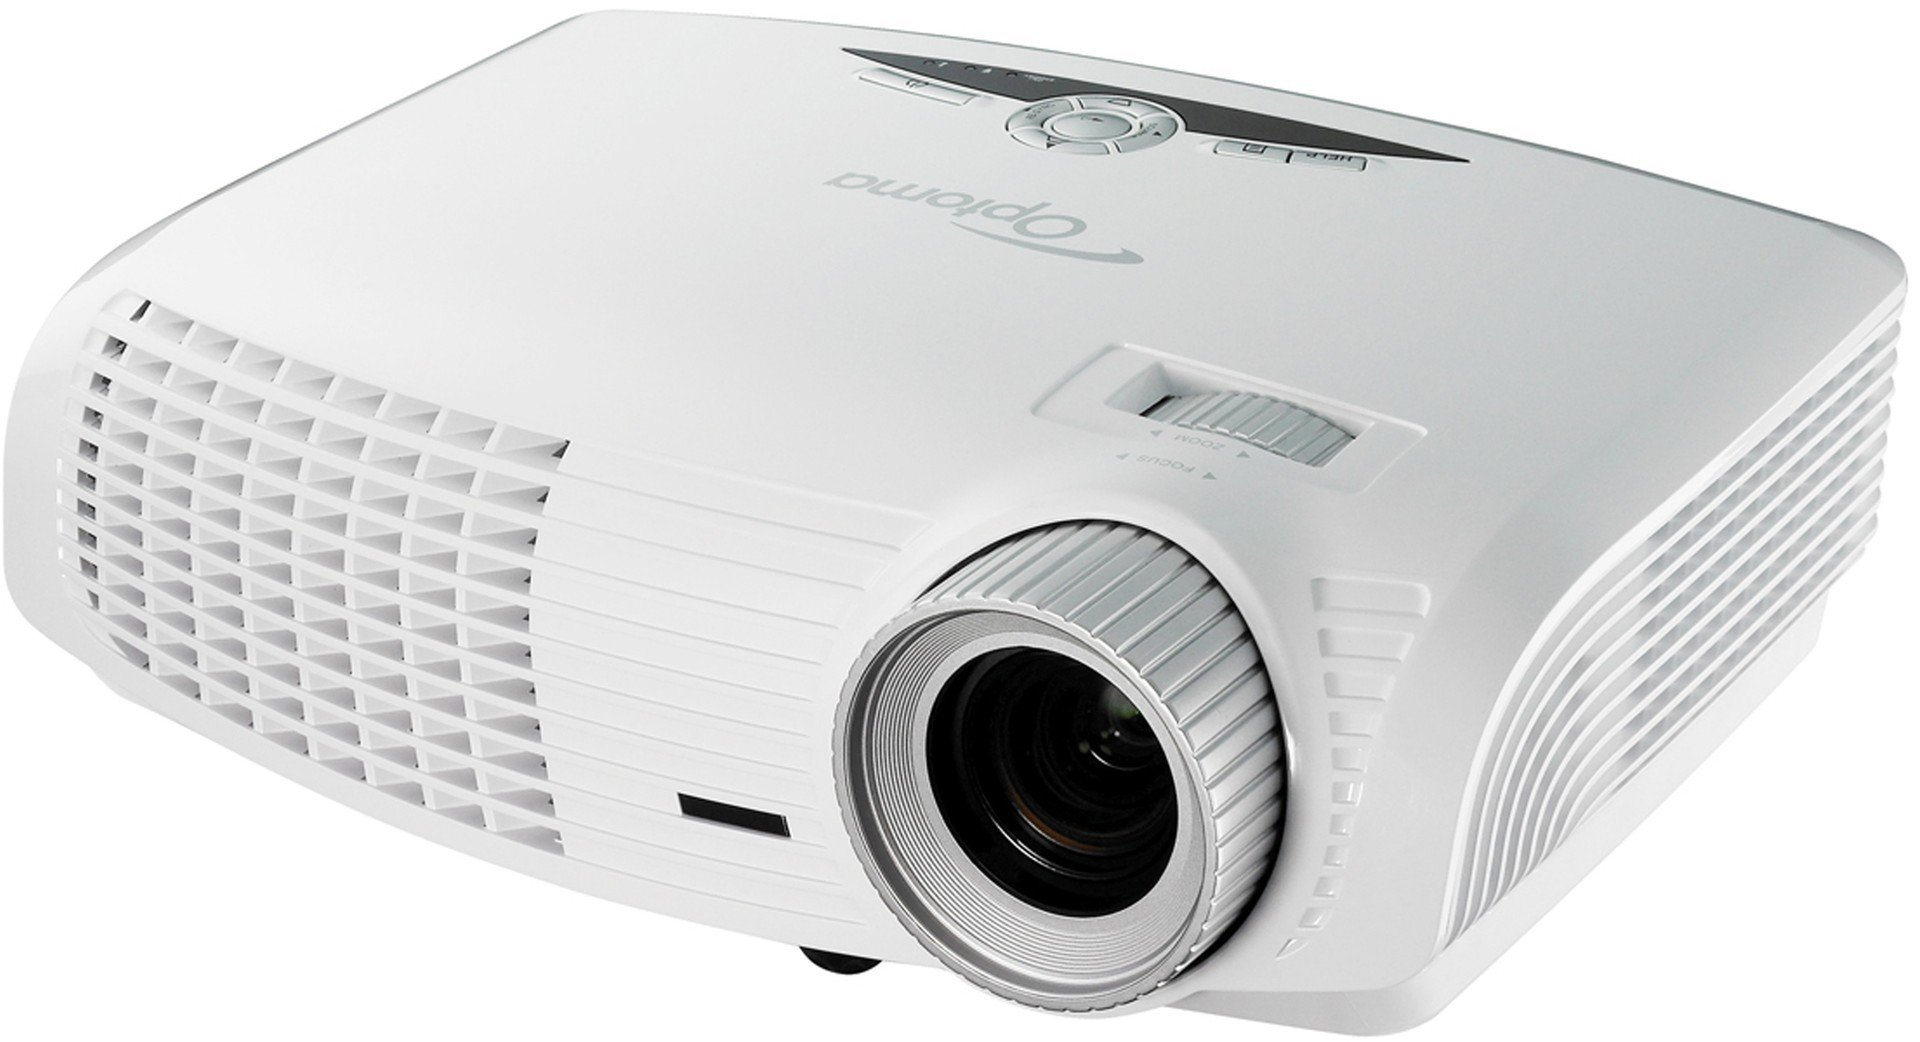 Gaming 3D projector